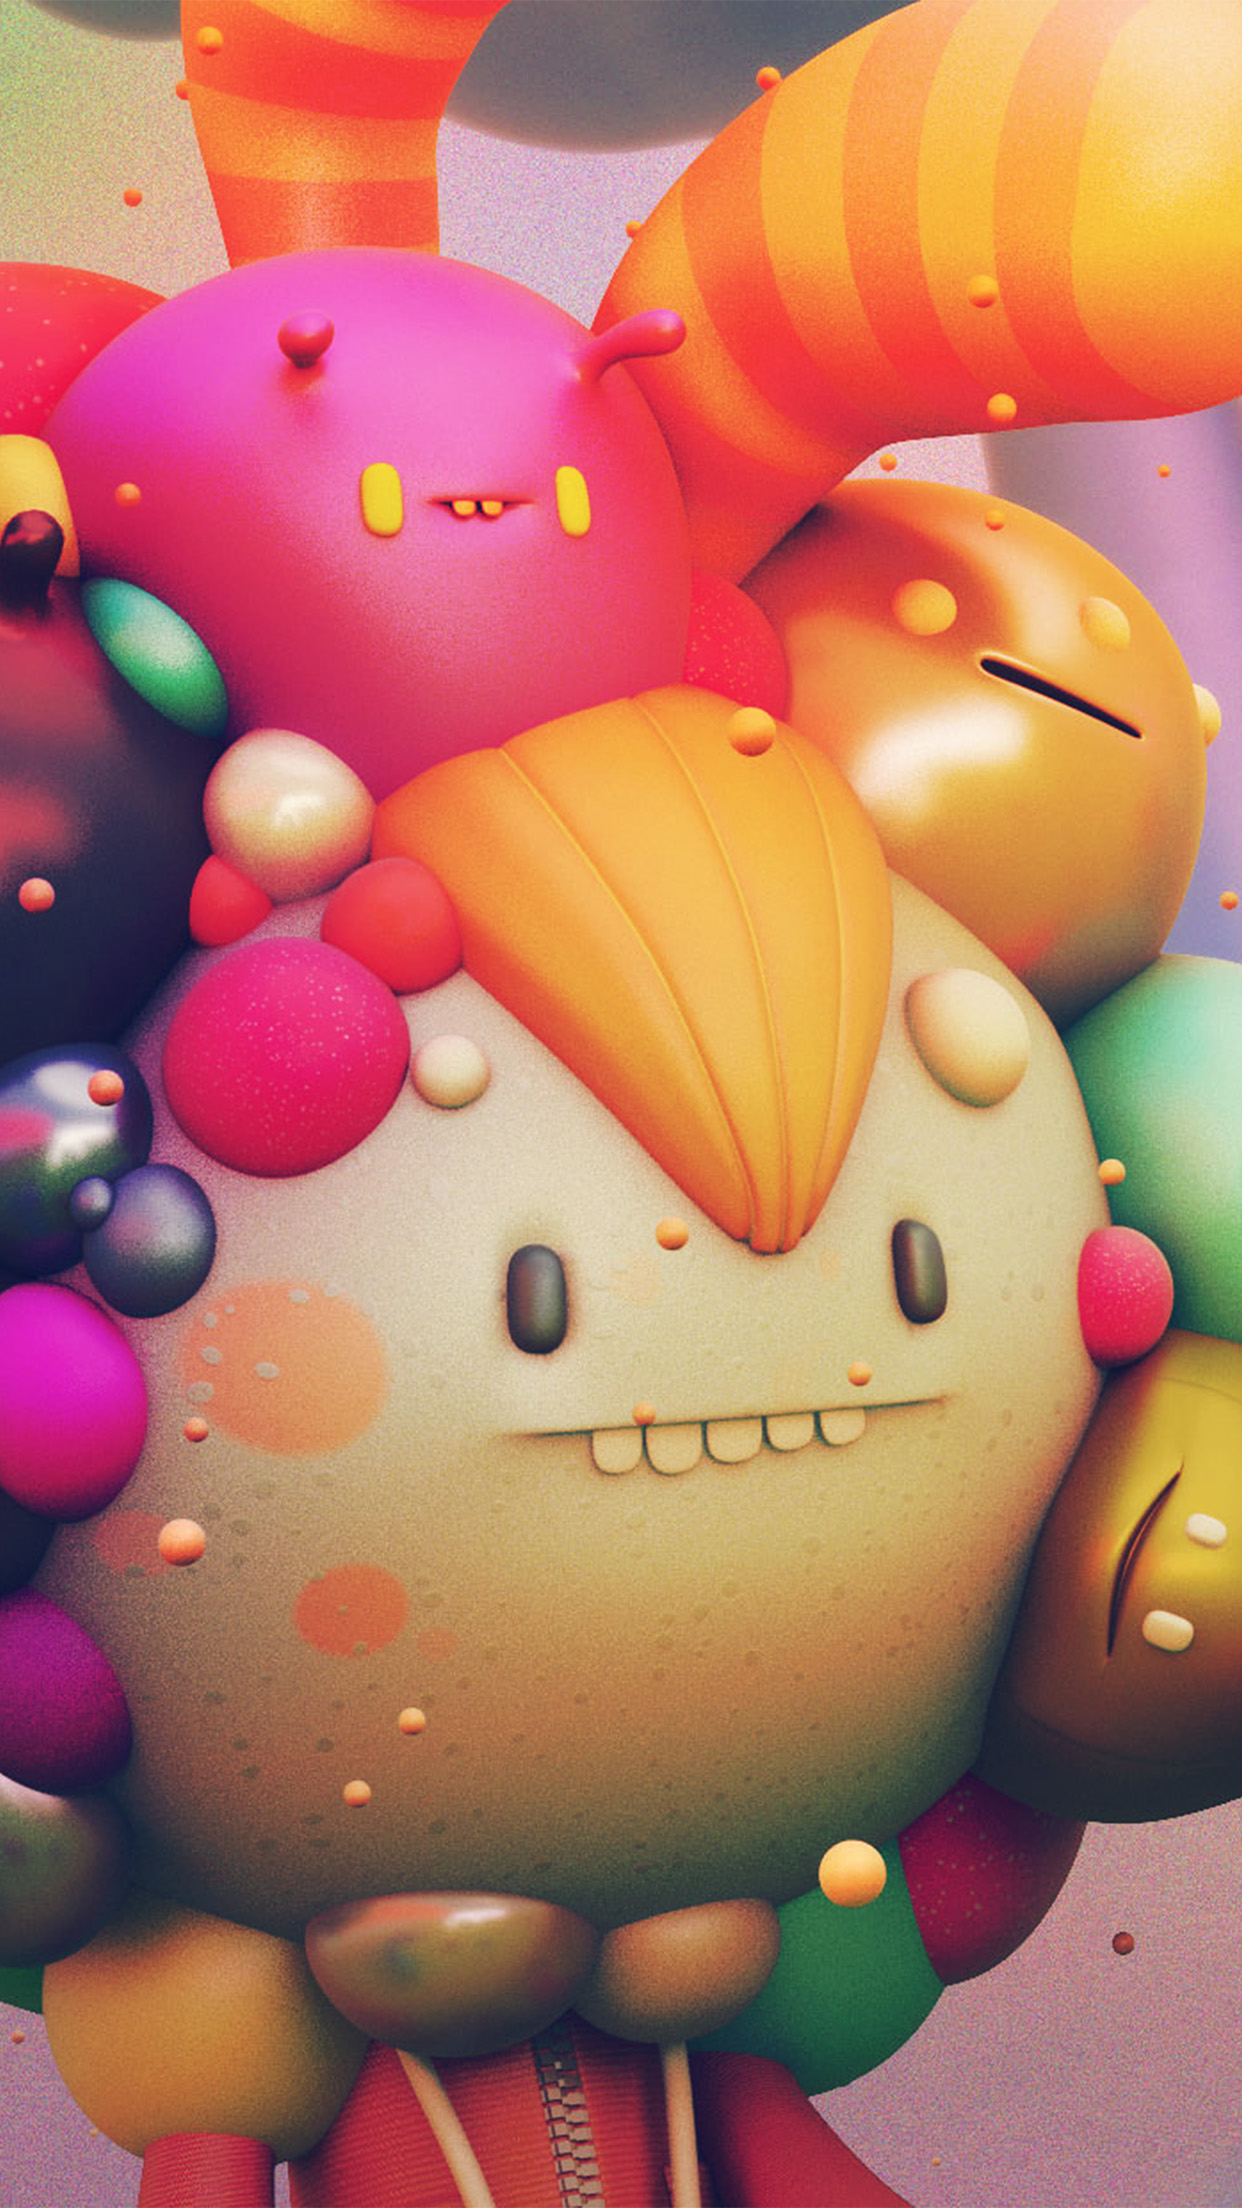 Ay16 Cute Monster Character 3d Illustration Art